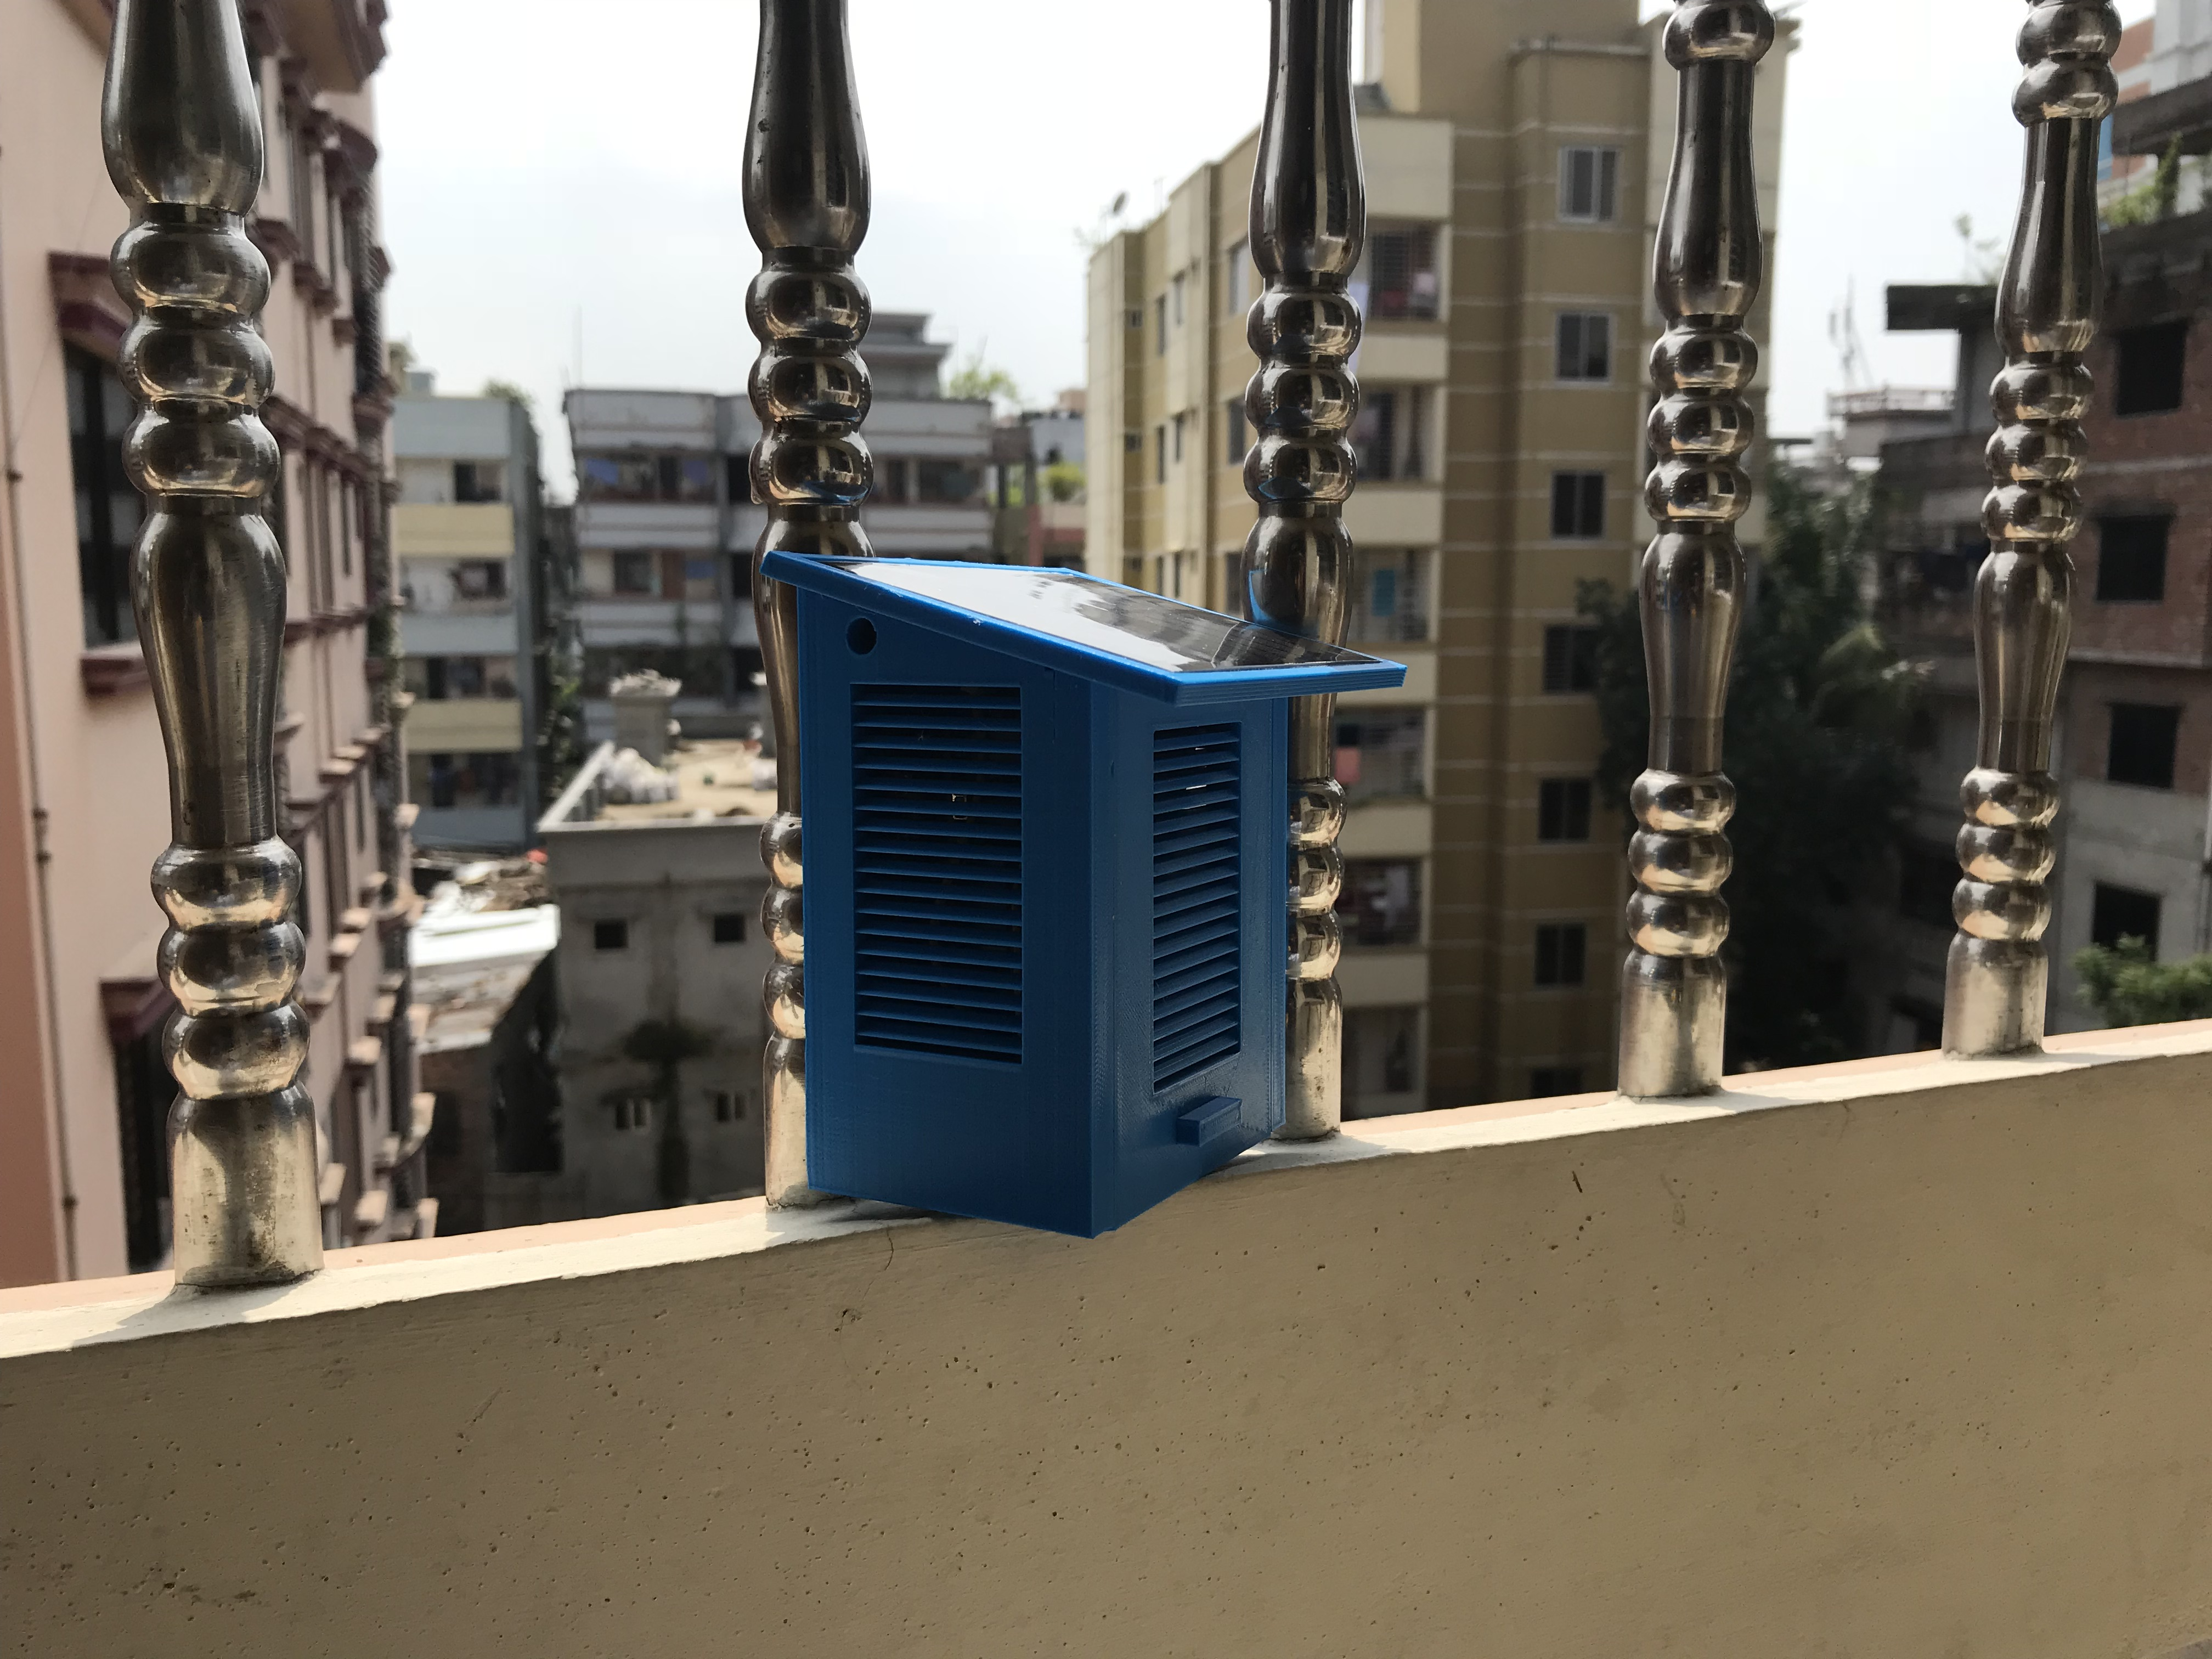 Picture of City Environmental Monitoring Device